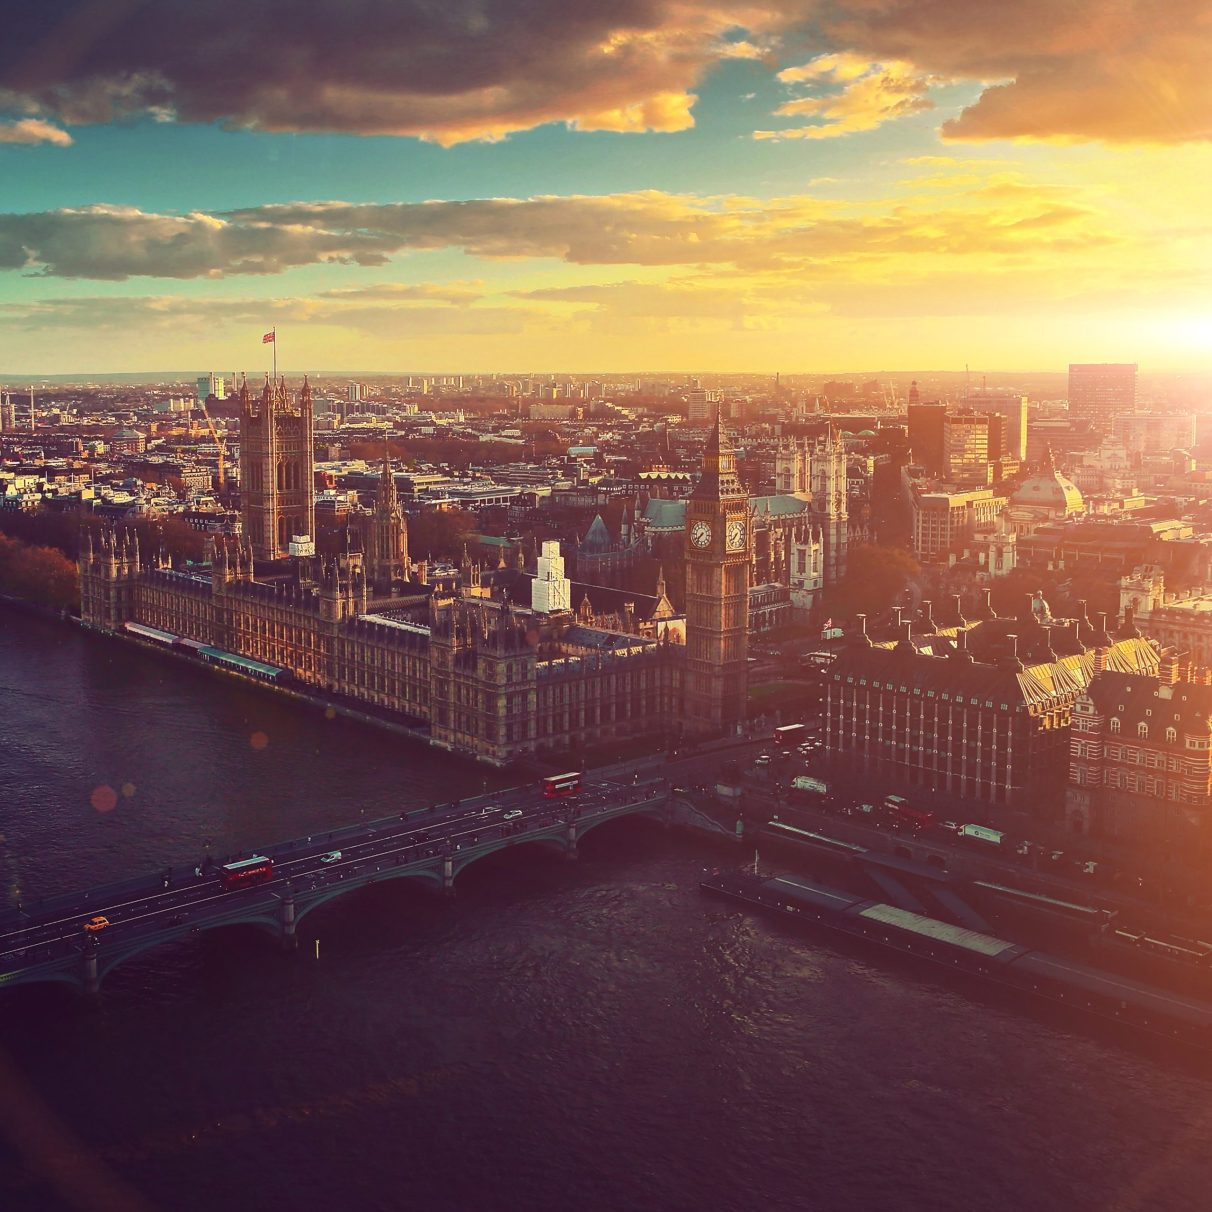 papers-co-mm23-england-skyview-city-flare-big-ben-nature-40-wallpaper